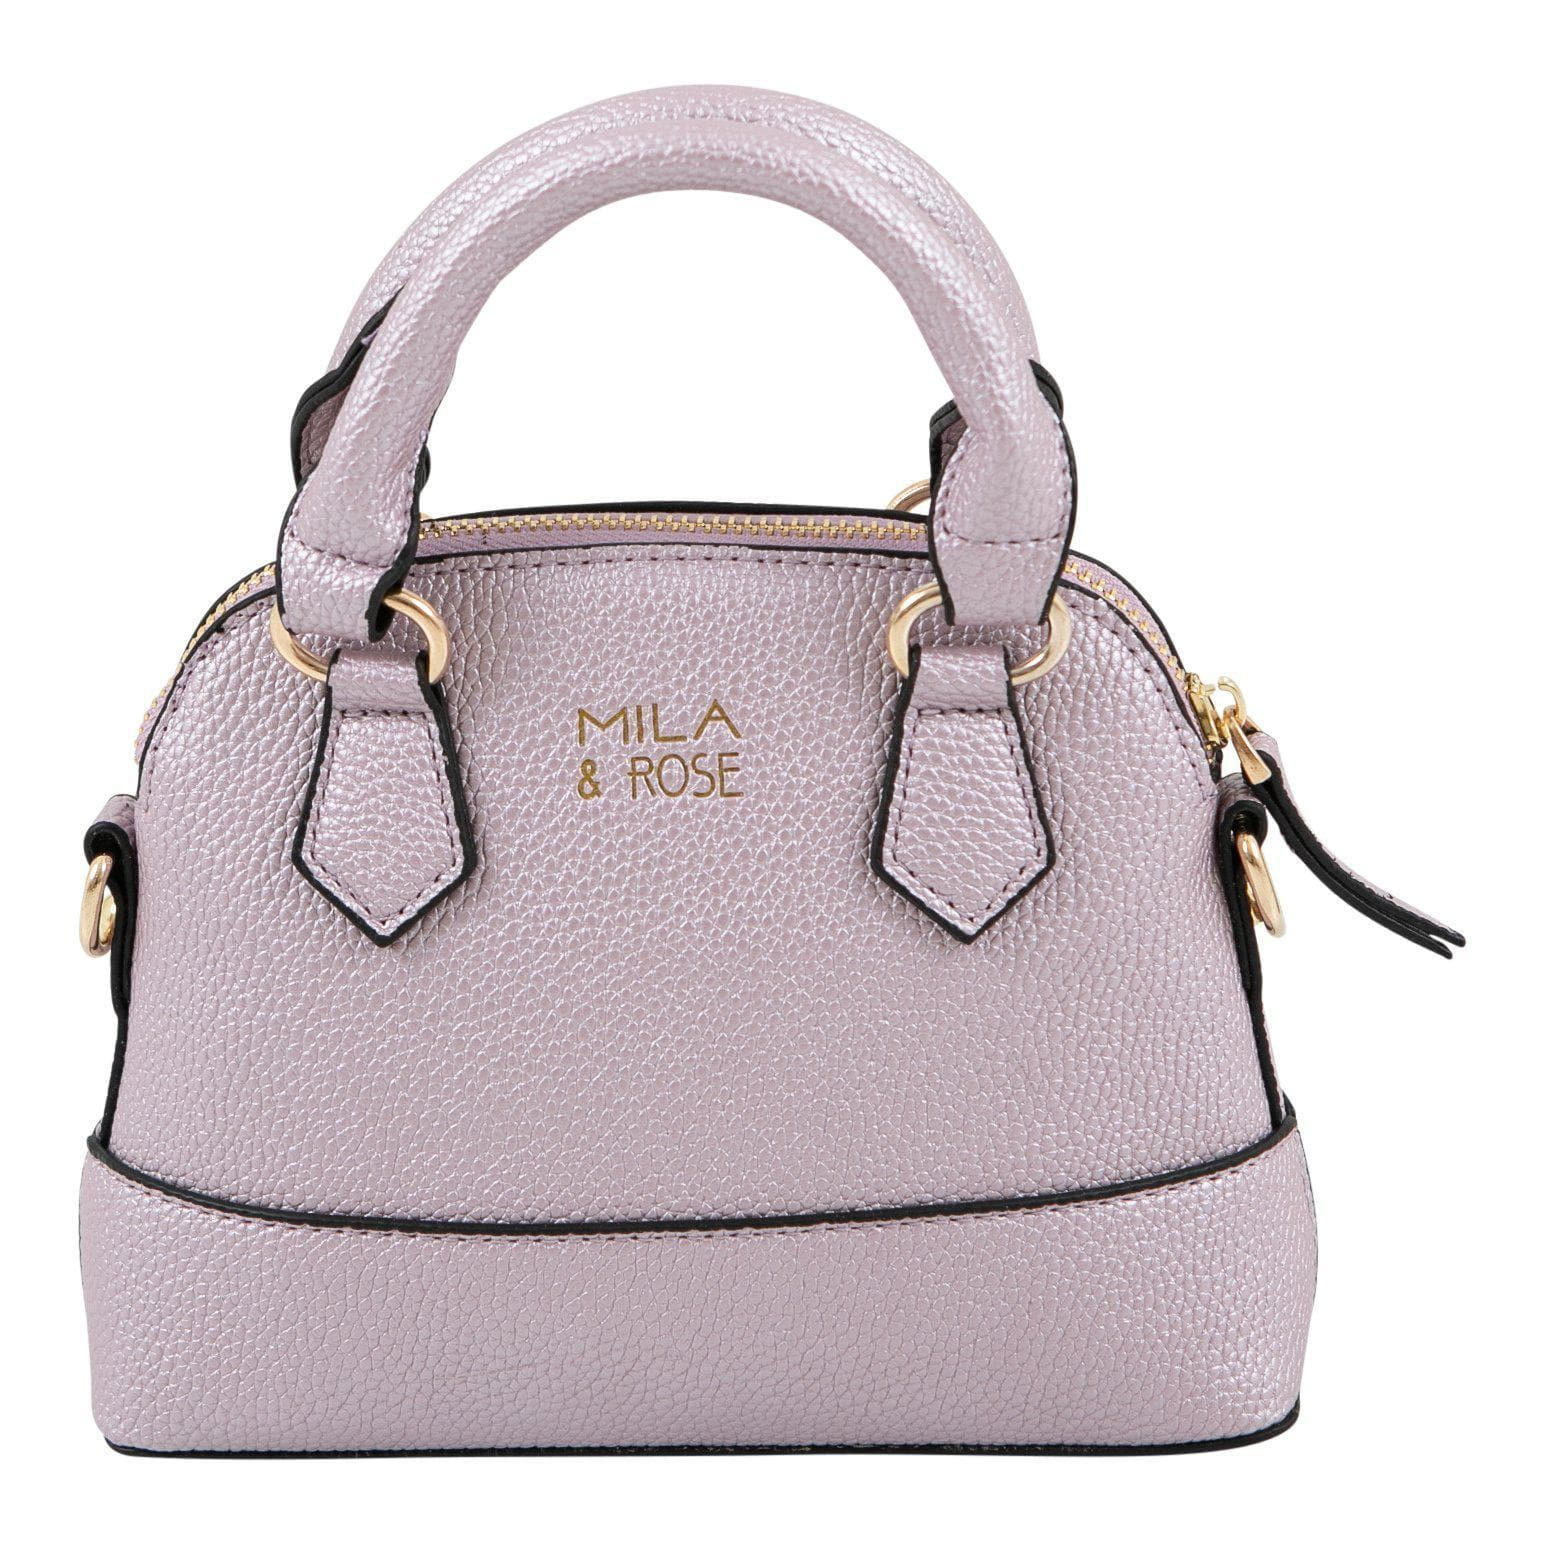 Lavender Metallic Girl's Purse-Mila & Rose ®